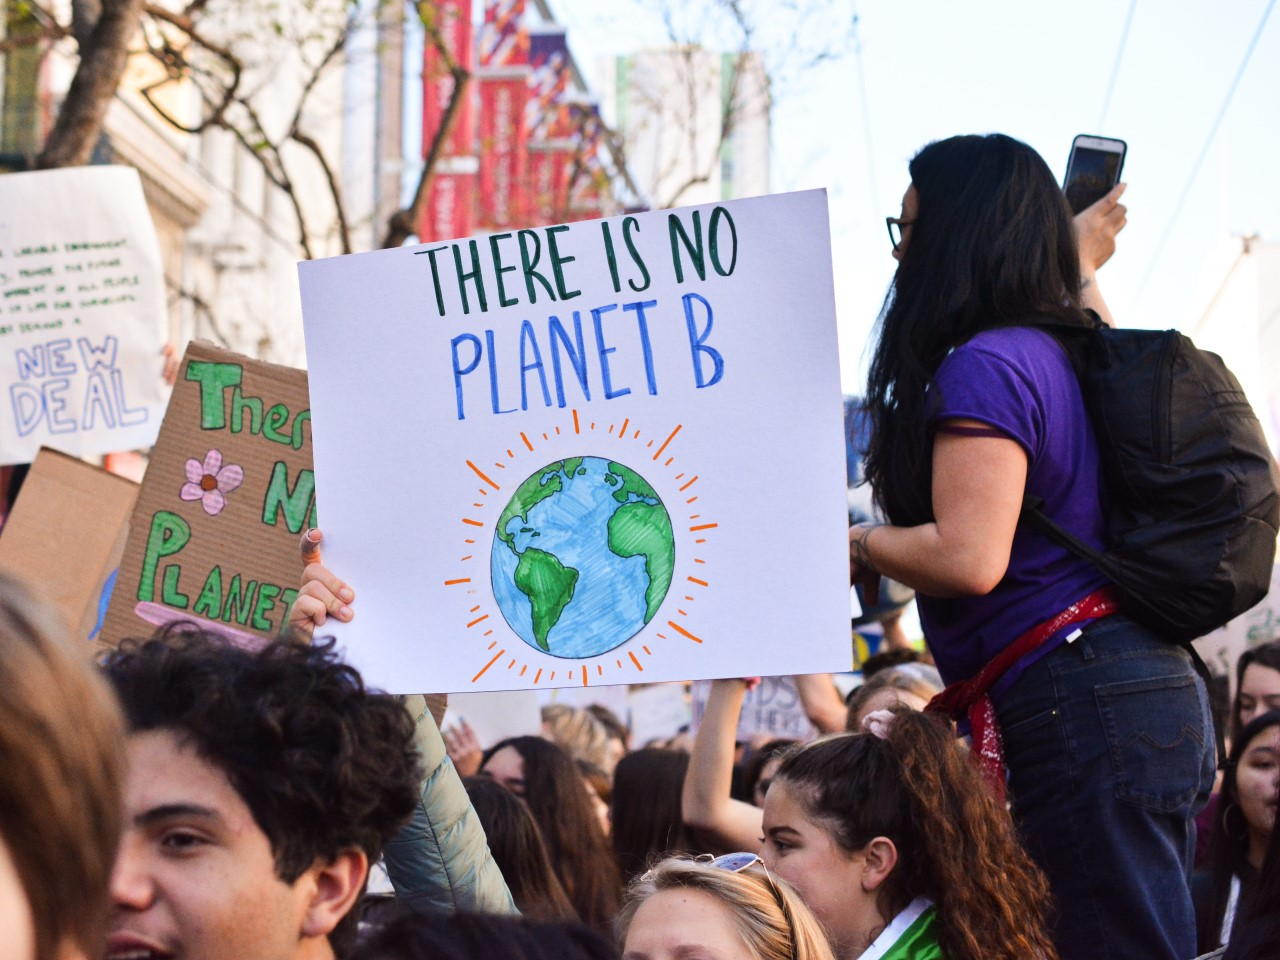 Protestors take part in a climate change march